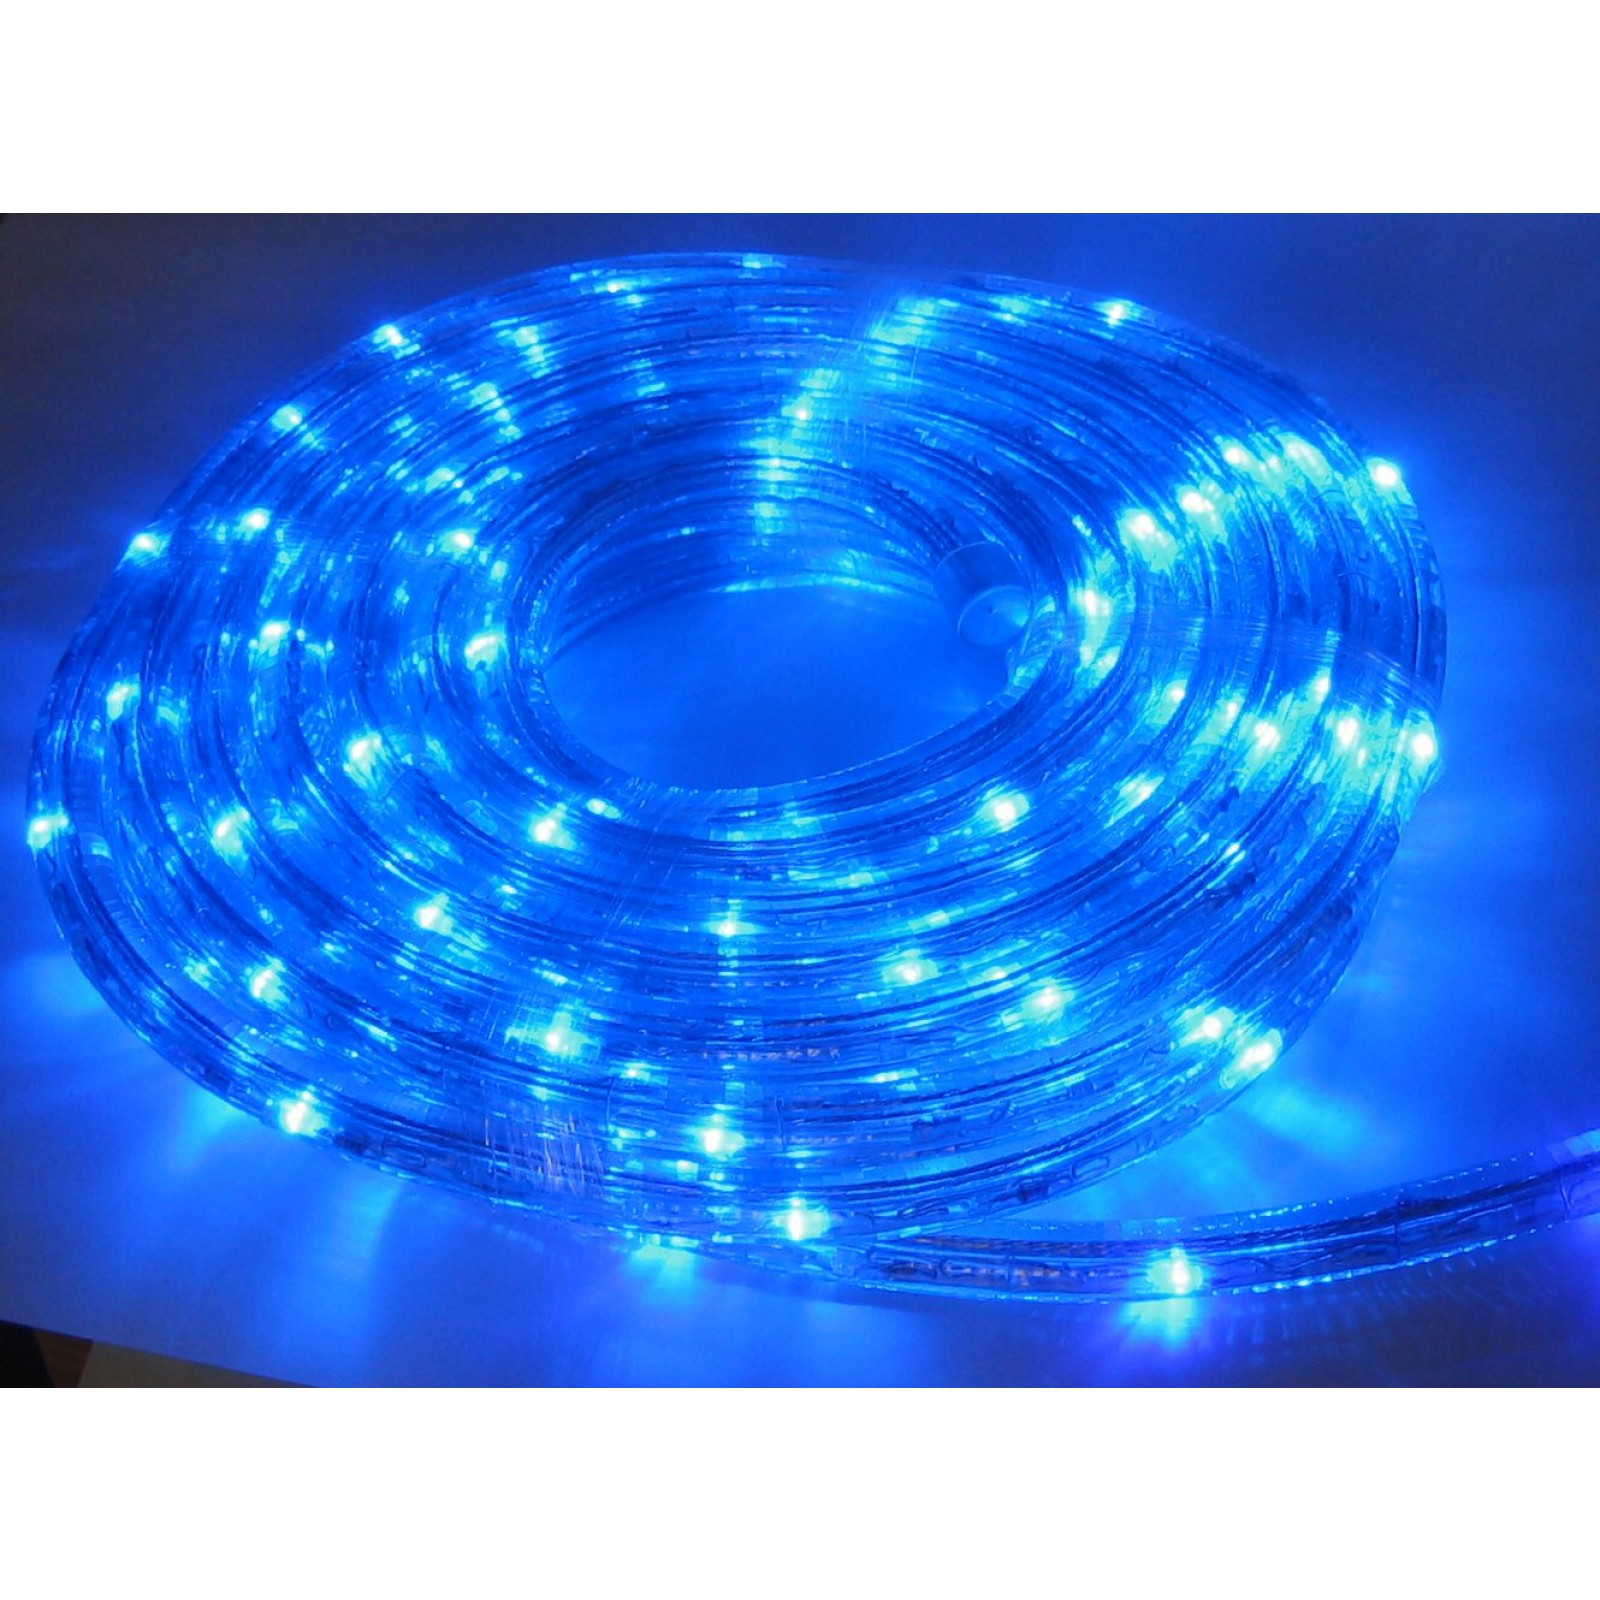 Jb systems led rope light rgb 30m roll 49671 aloadofball Images